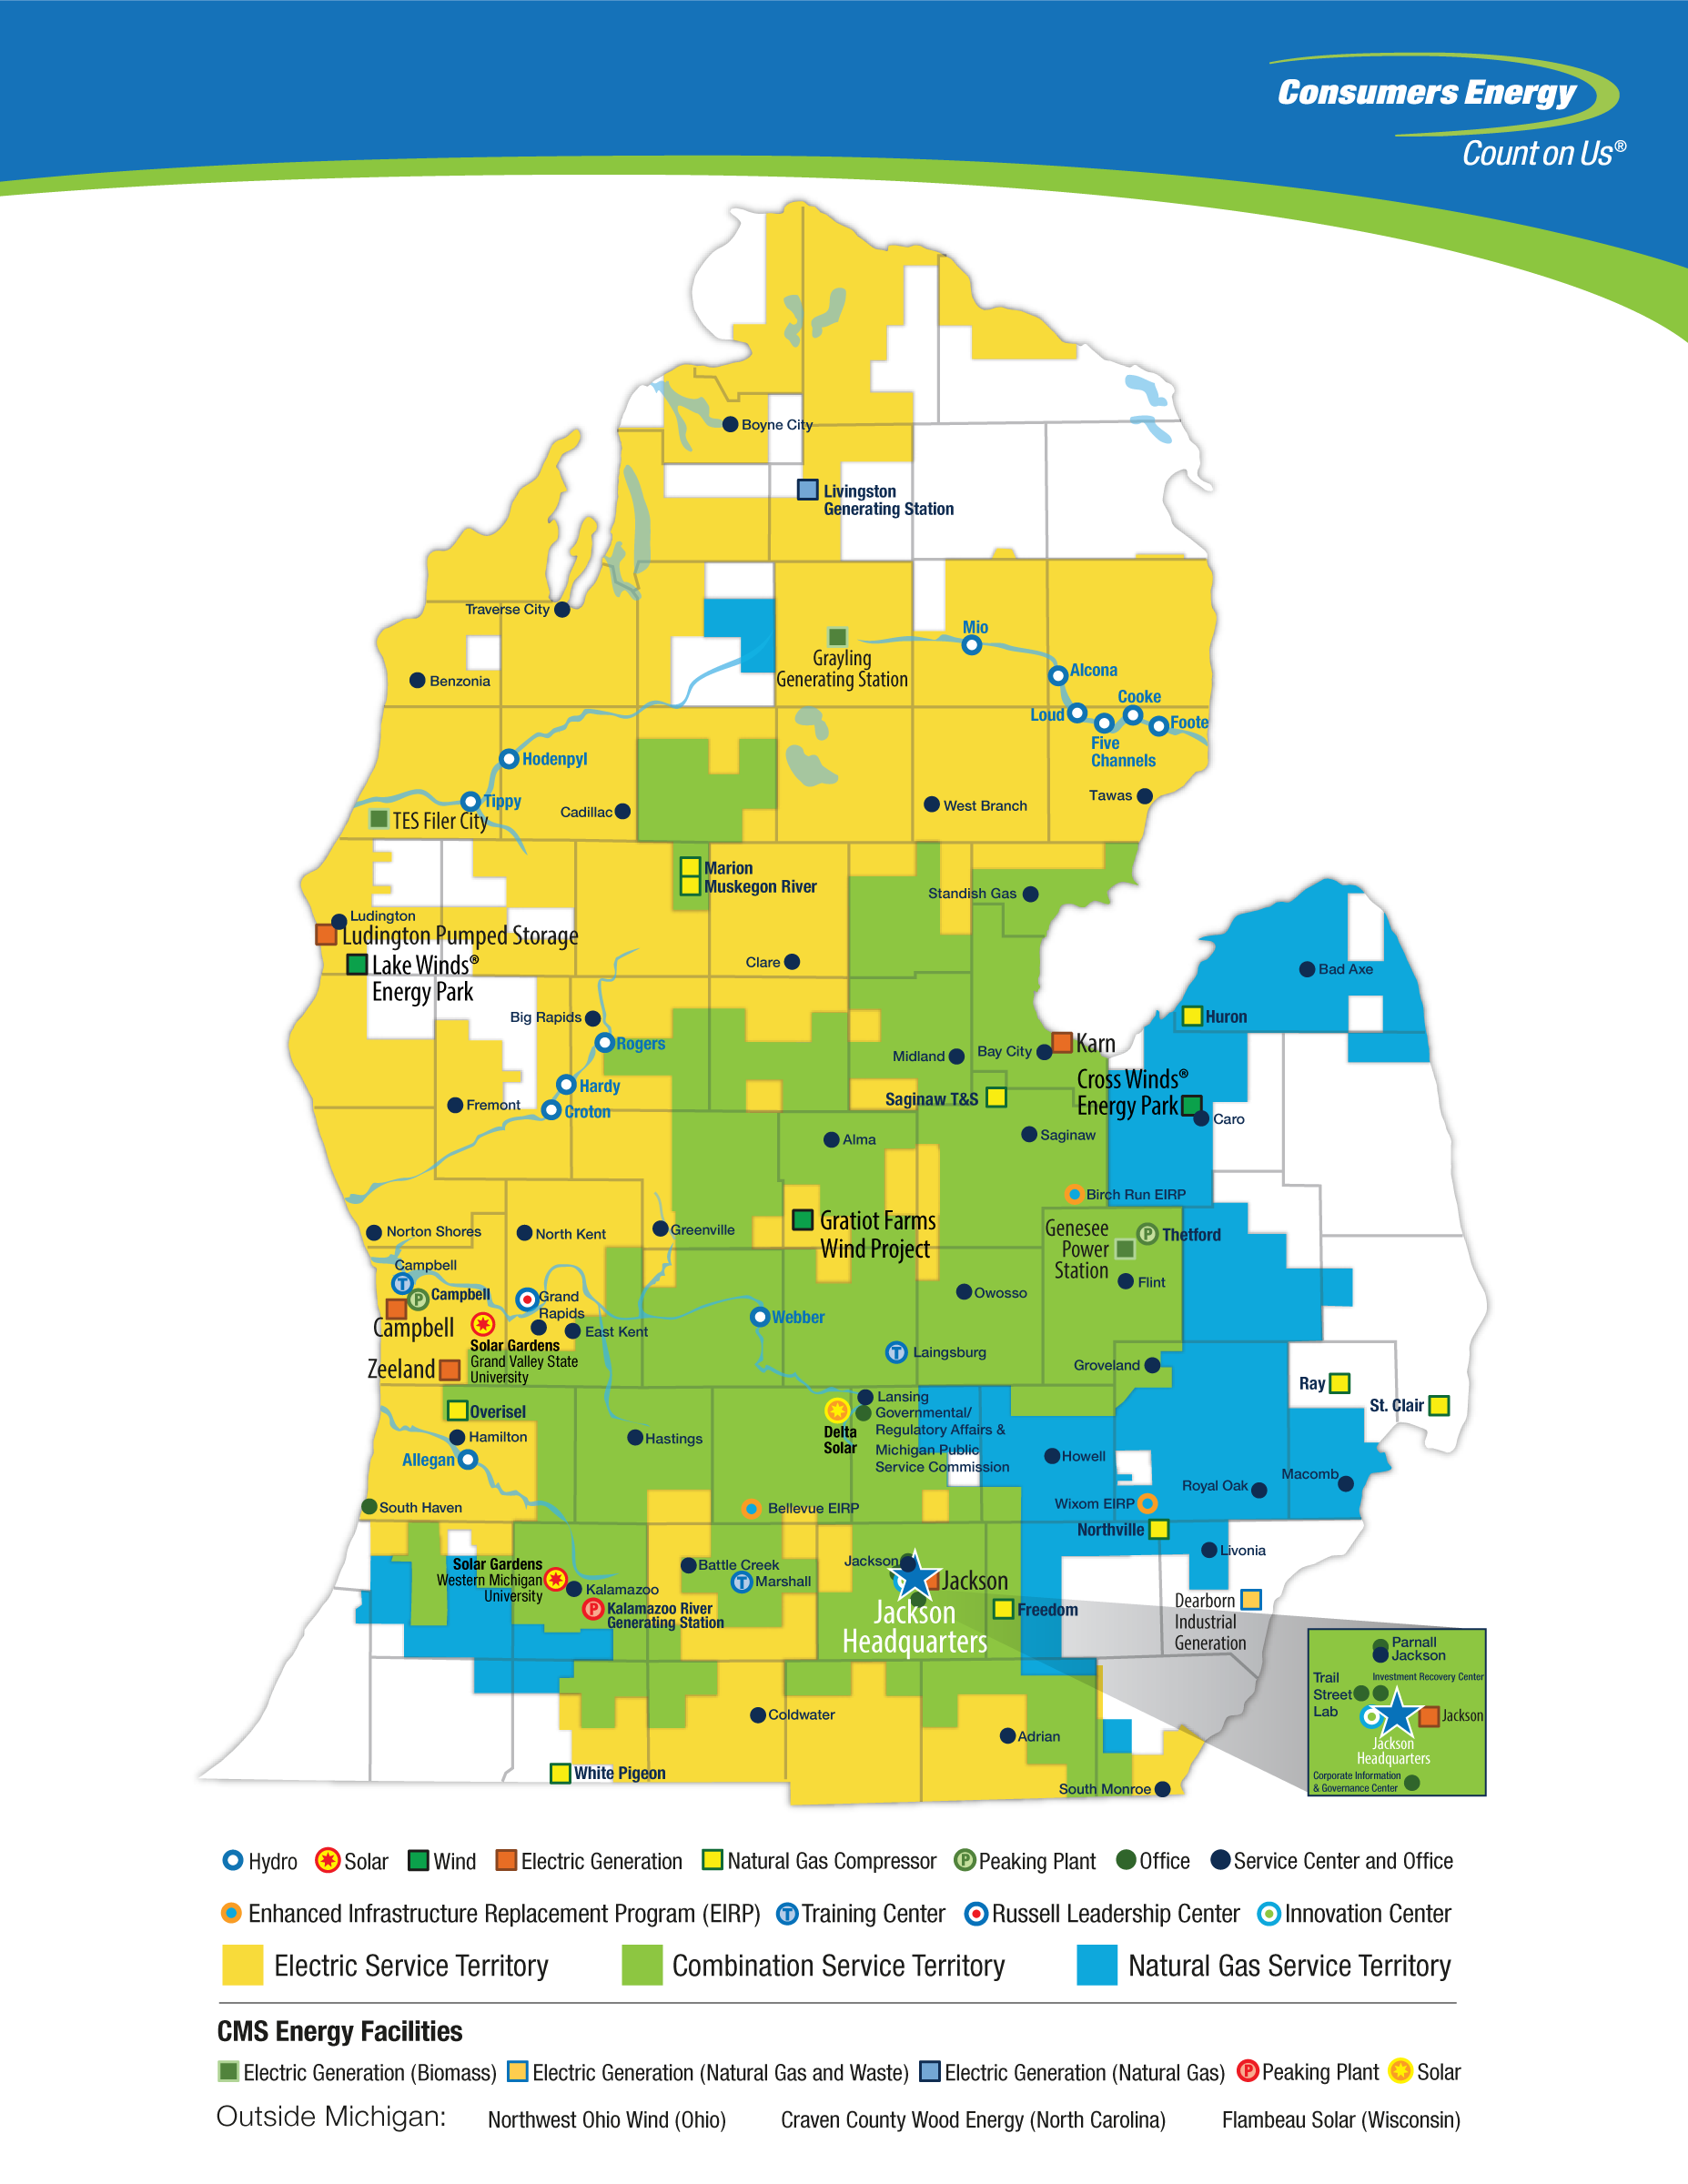 Electric and Natural Gas Service Territories | Consumers Energy on